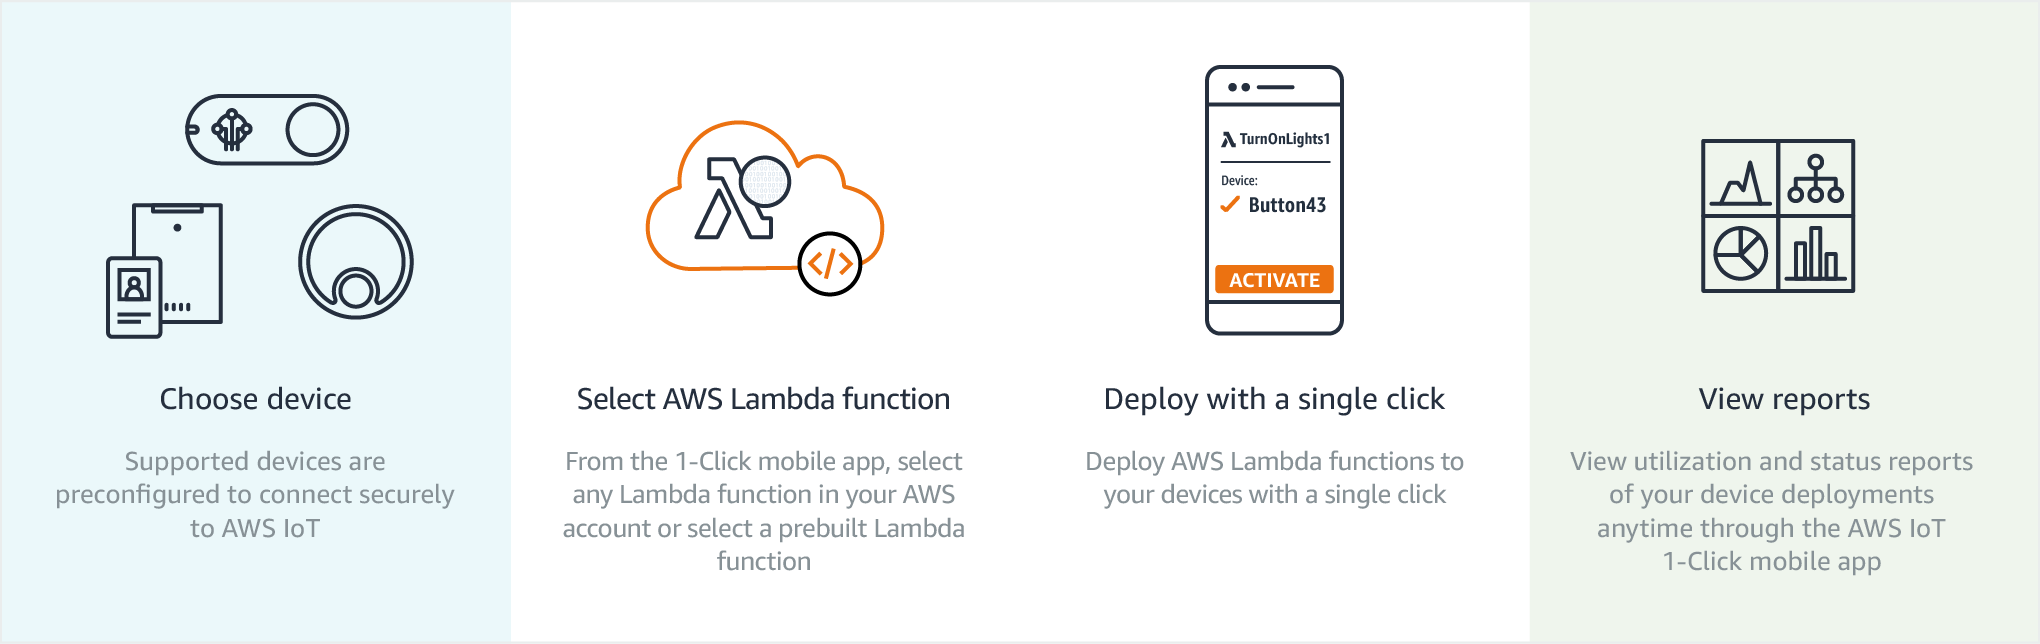 AWS IoT 1-Click - How It Works